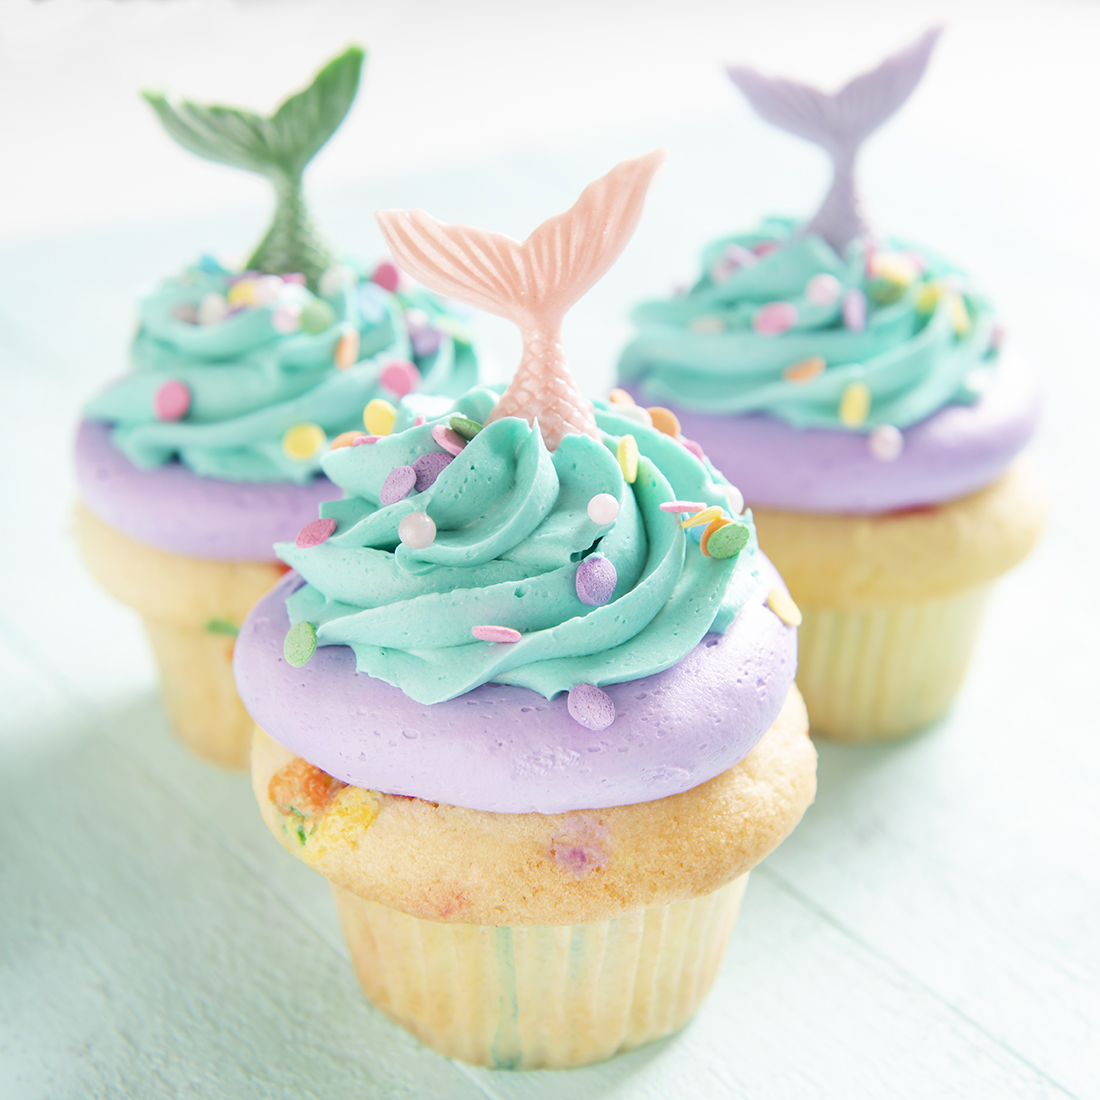 Mermaids! - Vanilla, chocolate, lemon, almond or strawberry cupcake, vanilla buttercream frosting. White chocolate mermaid tails. Color of your choice: $5.00 each, minimum of one dozen per flavor and design.